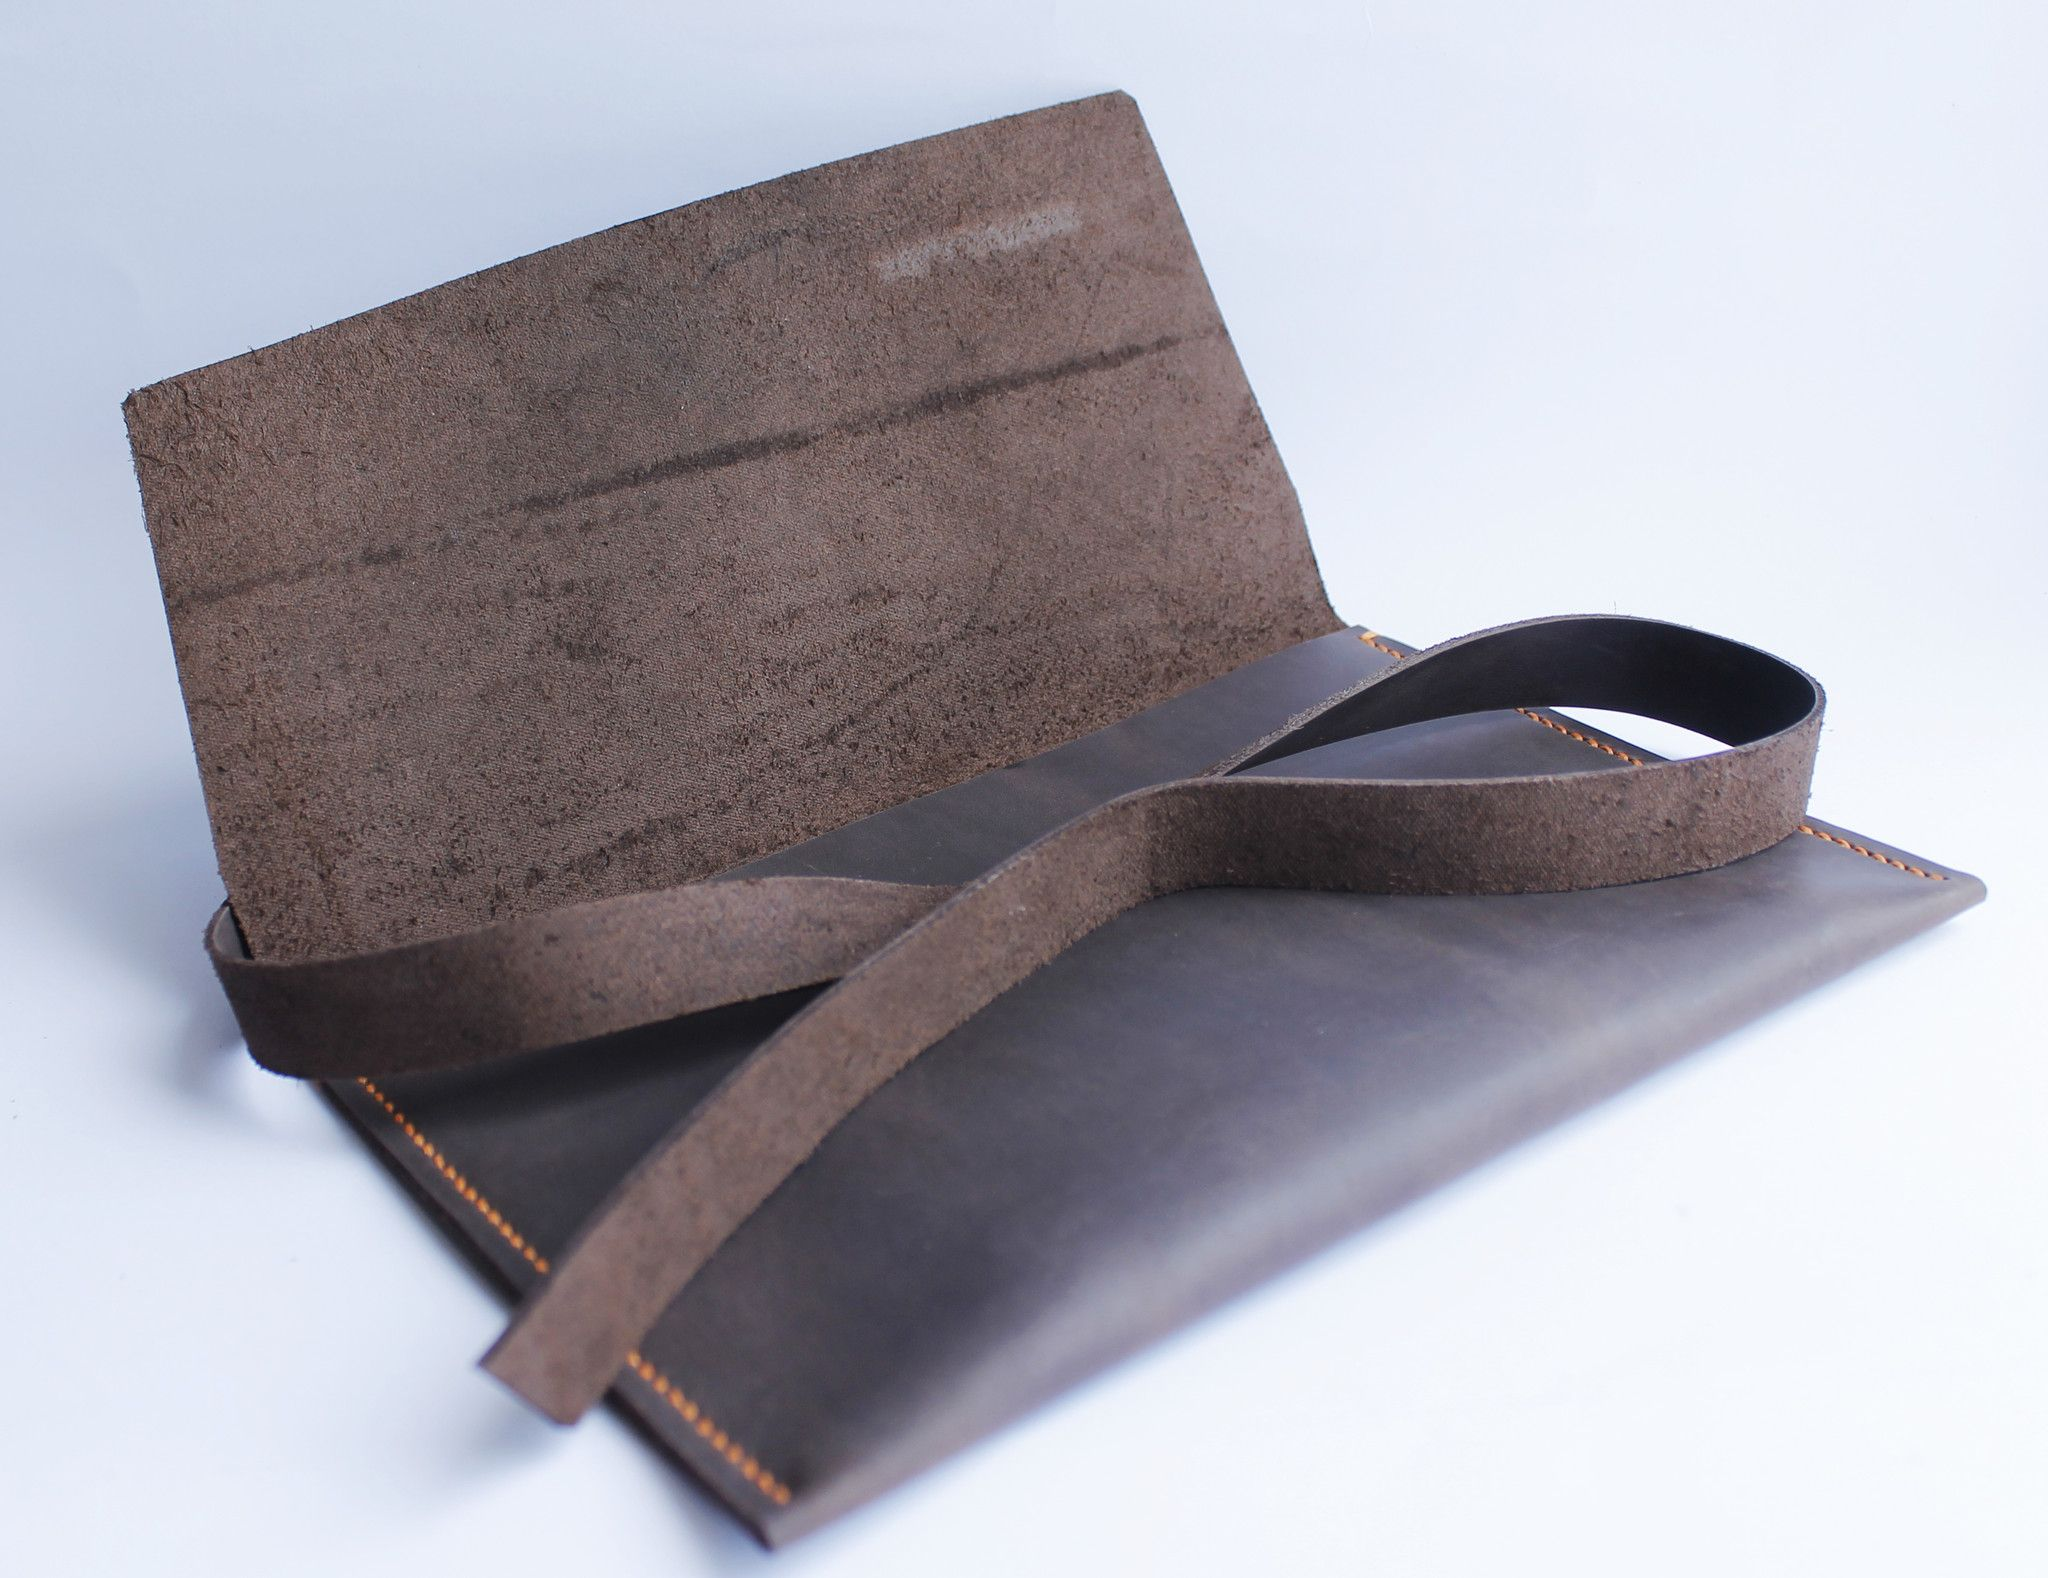 stylish and made of natural leather leather clutch  leather purse  leather clutch purse  three snails  clutch purse  mens clutch clutch wallet Natural Spanish leather clutch bag Three Snails